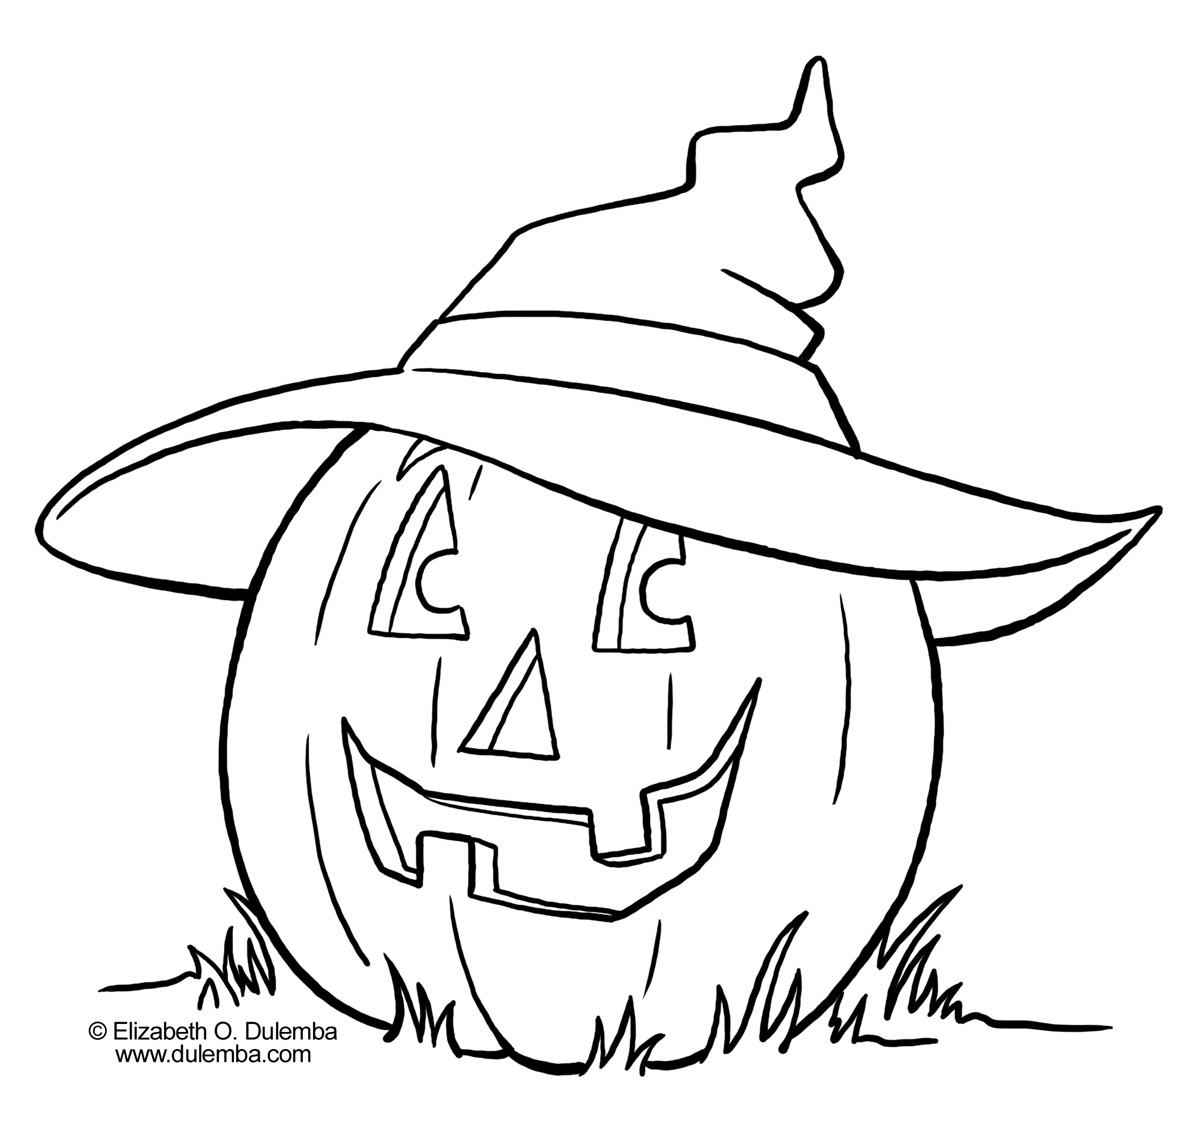 pumkin coloring page coloring pages pumpkin coloring pages collections 2011 page pumkin coloring